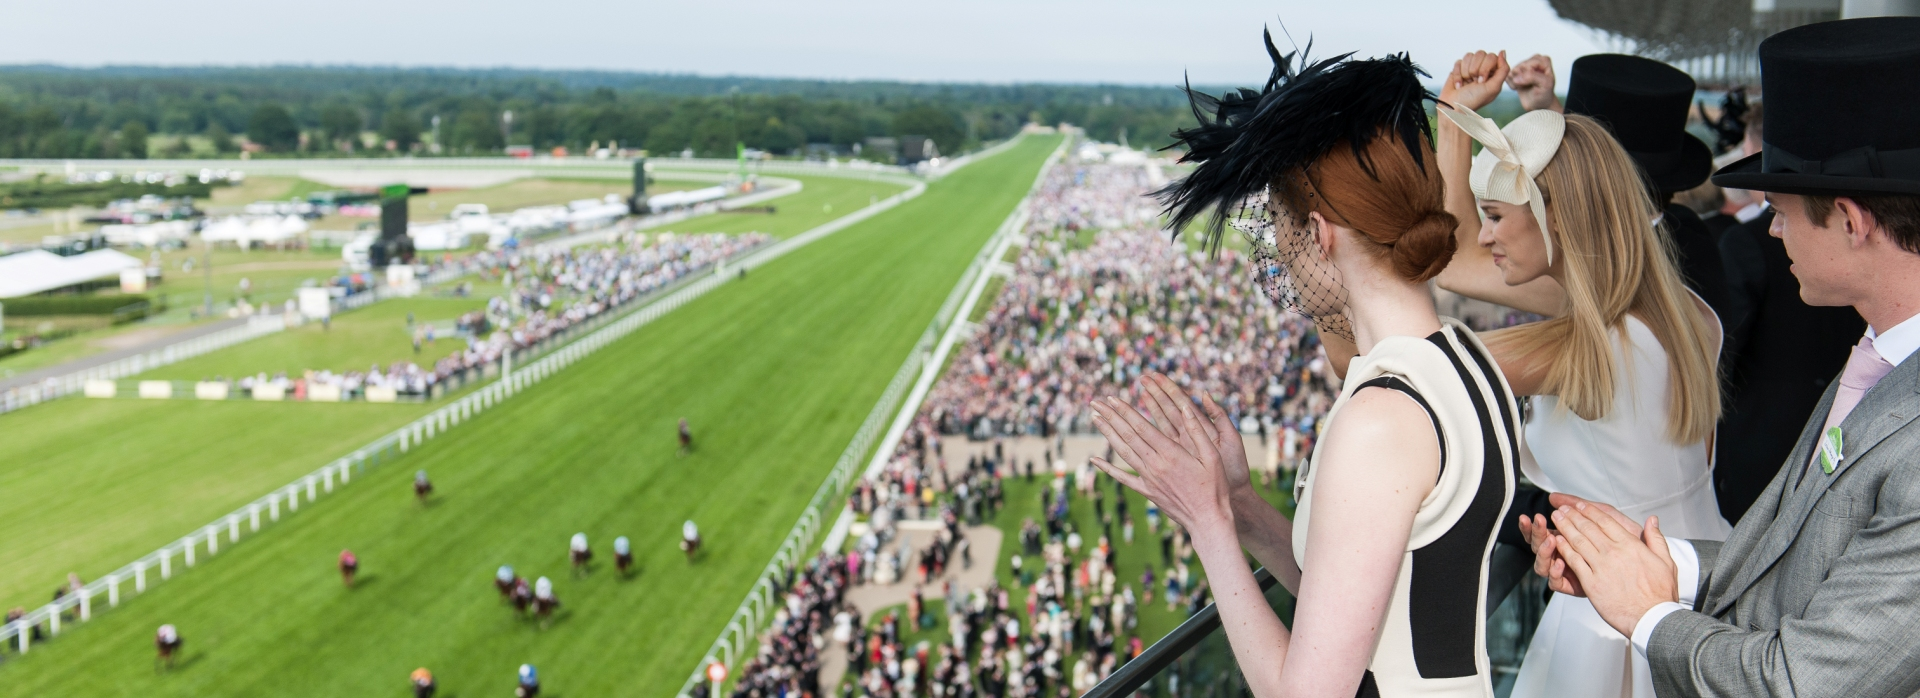 Royal-Ascot-Hospitality-Packages.jpg